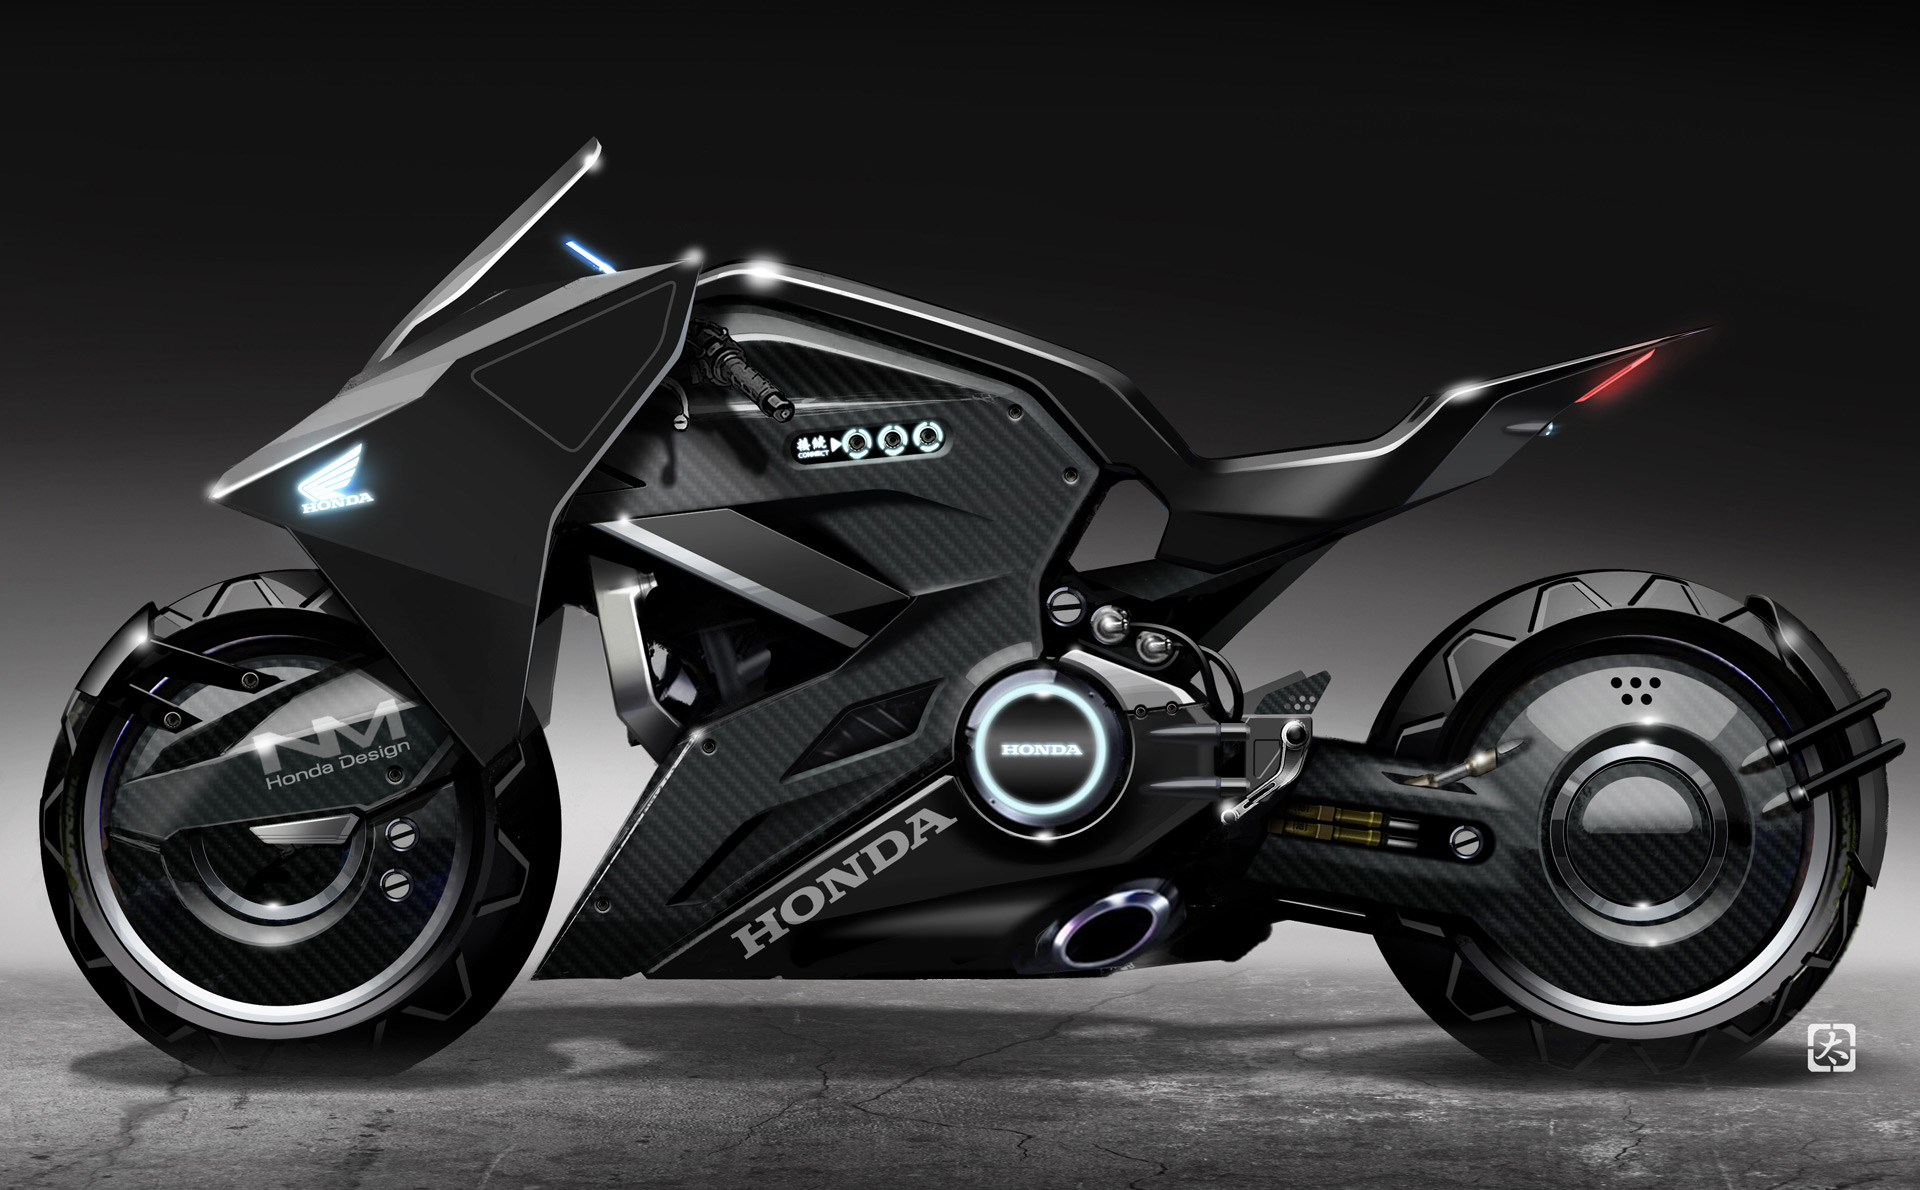 futuristic honda motorcycle to star in �ghost in the shell�